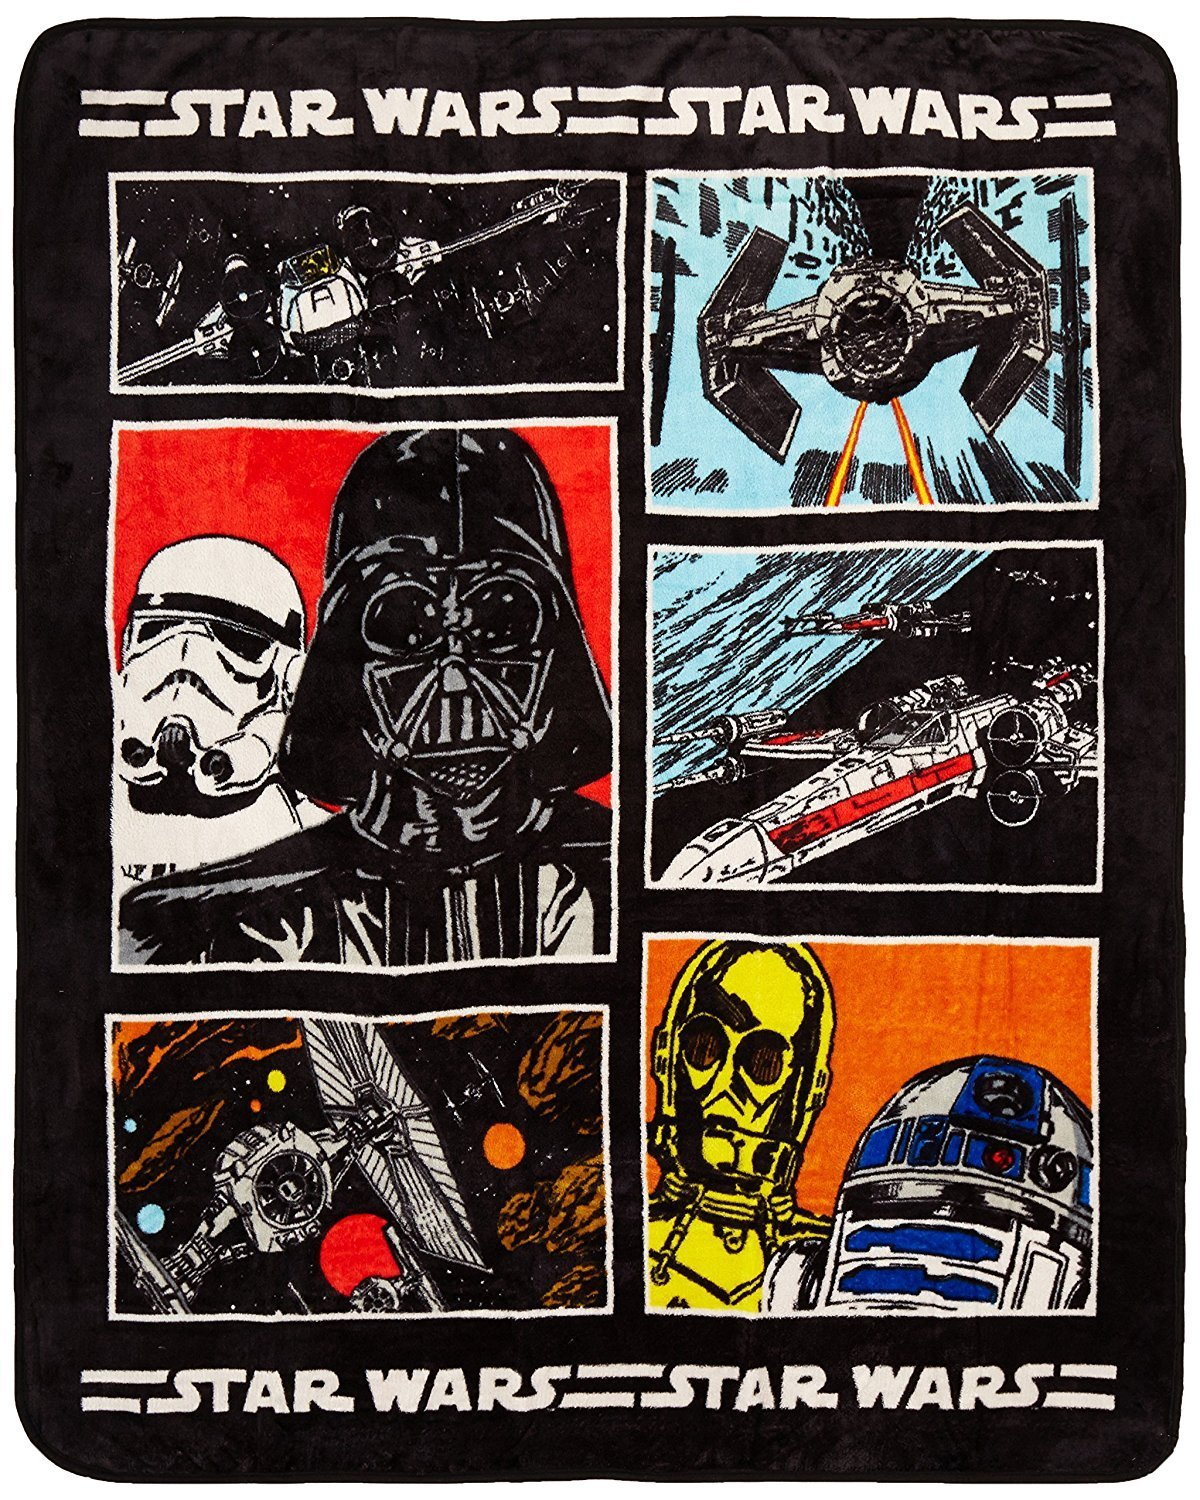 One of the best Star Wars gift ideas ever - a blanket